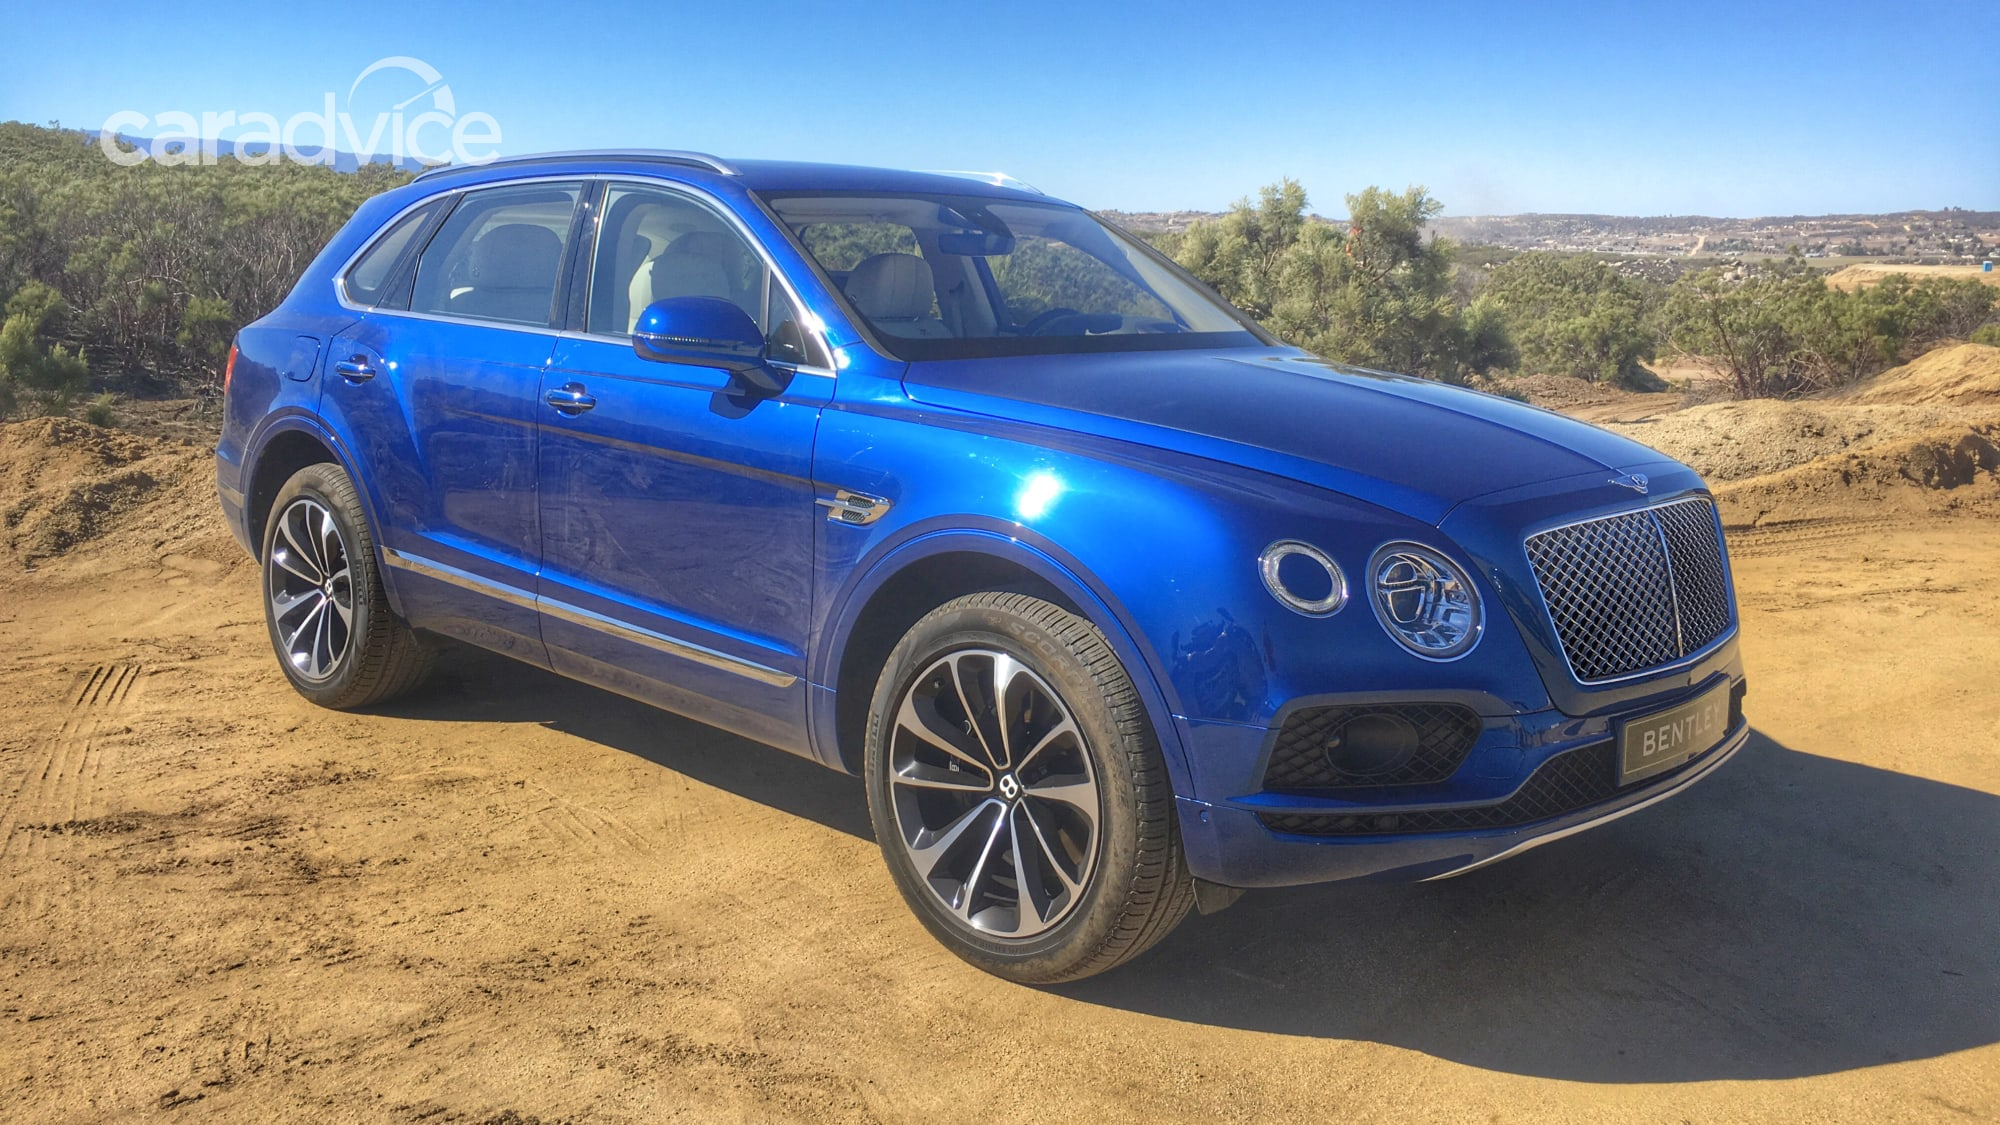 bentley bentayga to carry world's most expensive in-car